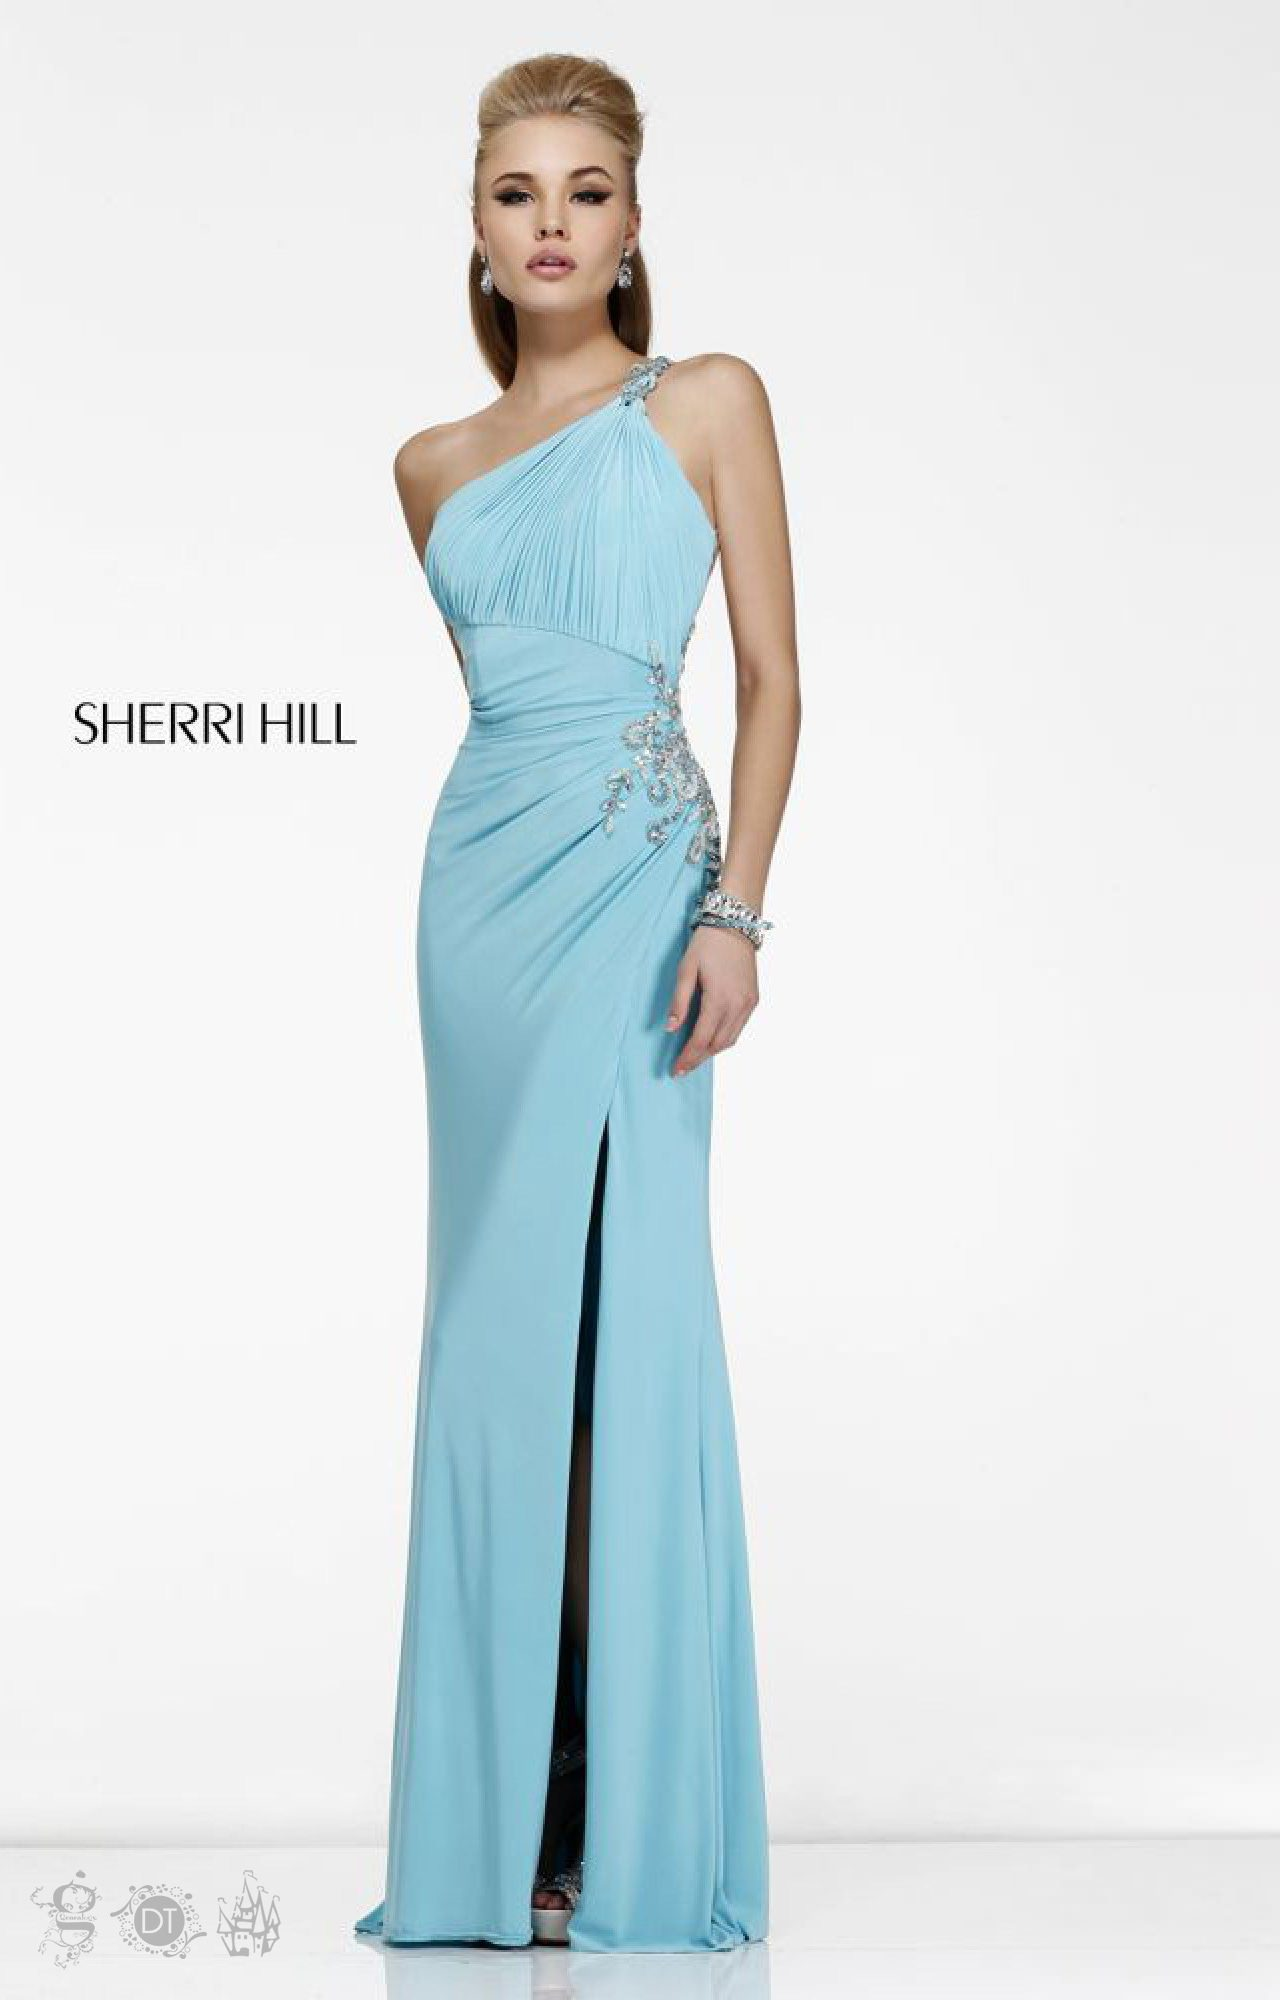 Prom Dresses In East Texas - Prom Dresses Cheap